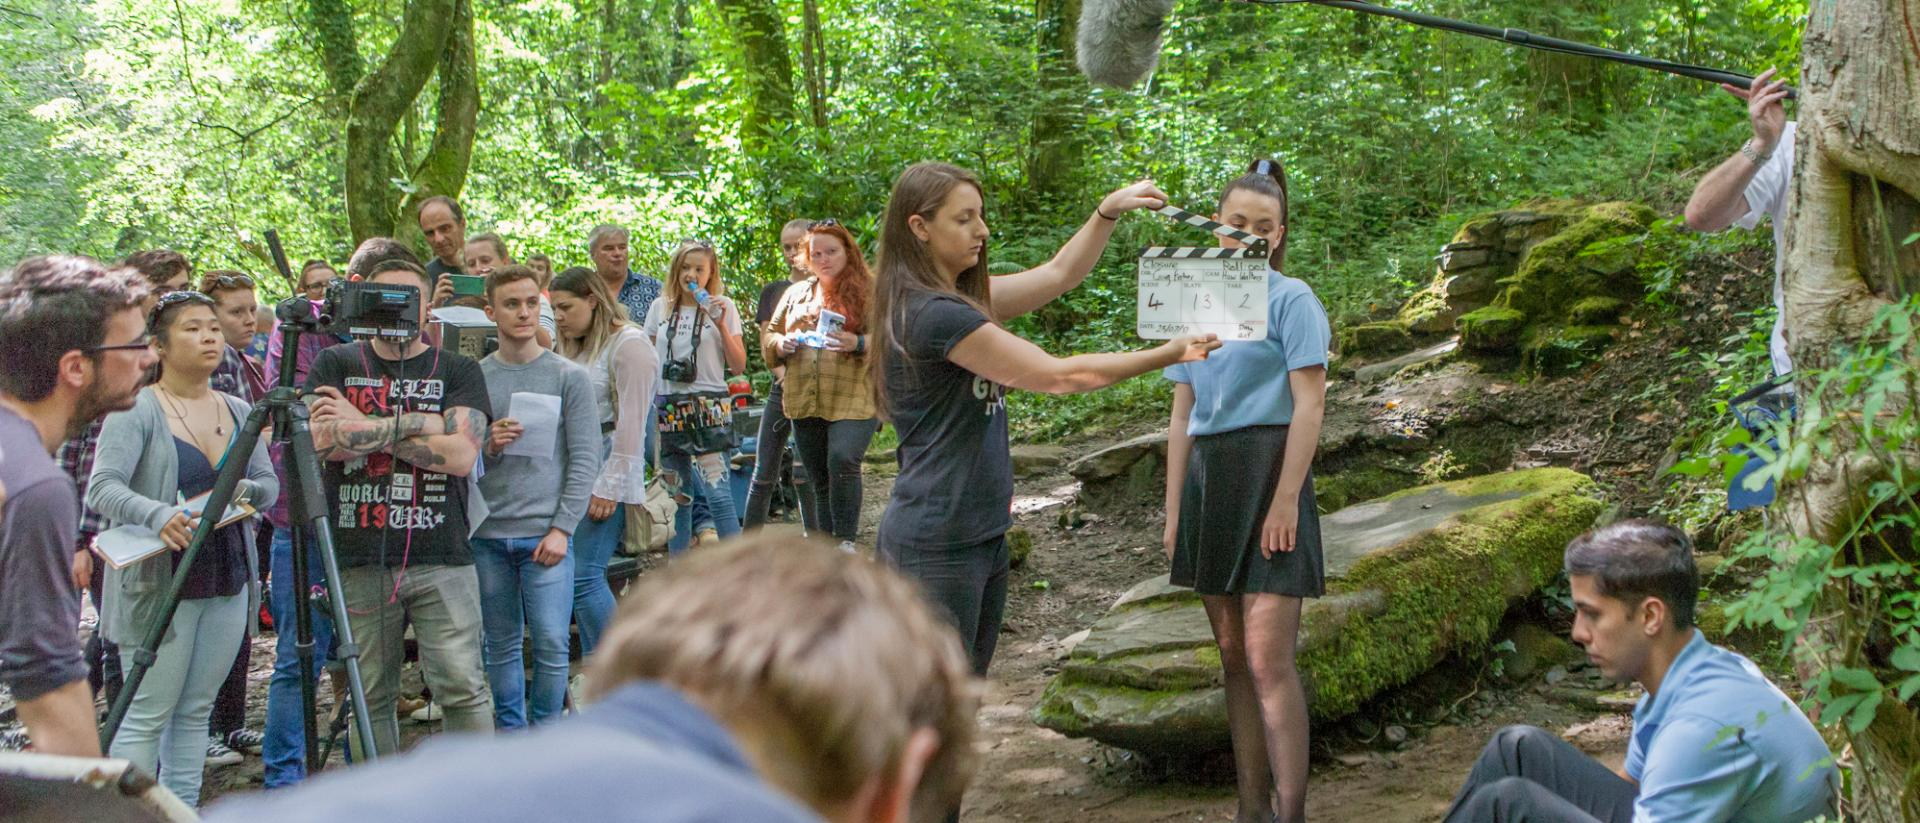 A group of teenagers are in a forest. They are congregating behind a large video camera. One young lady is in front of the camera holding a film clapper board.